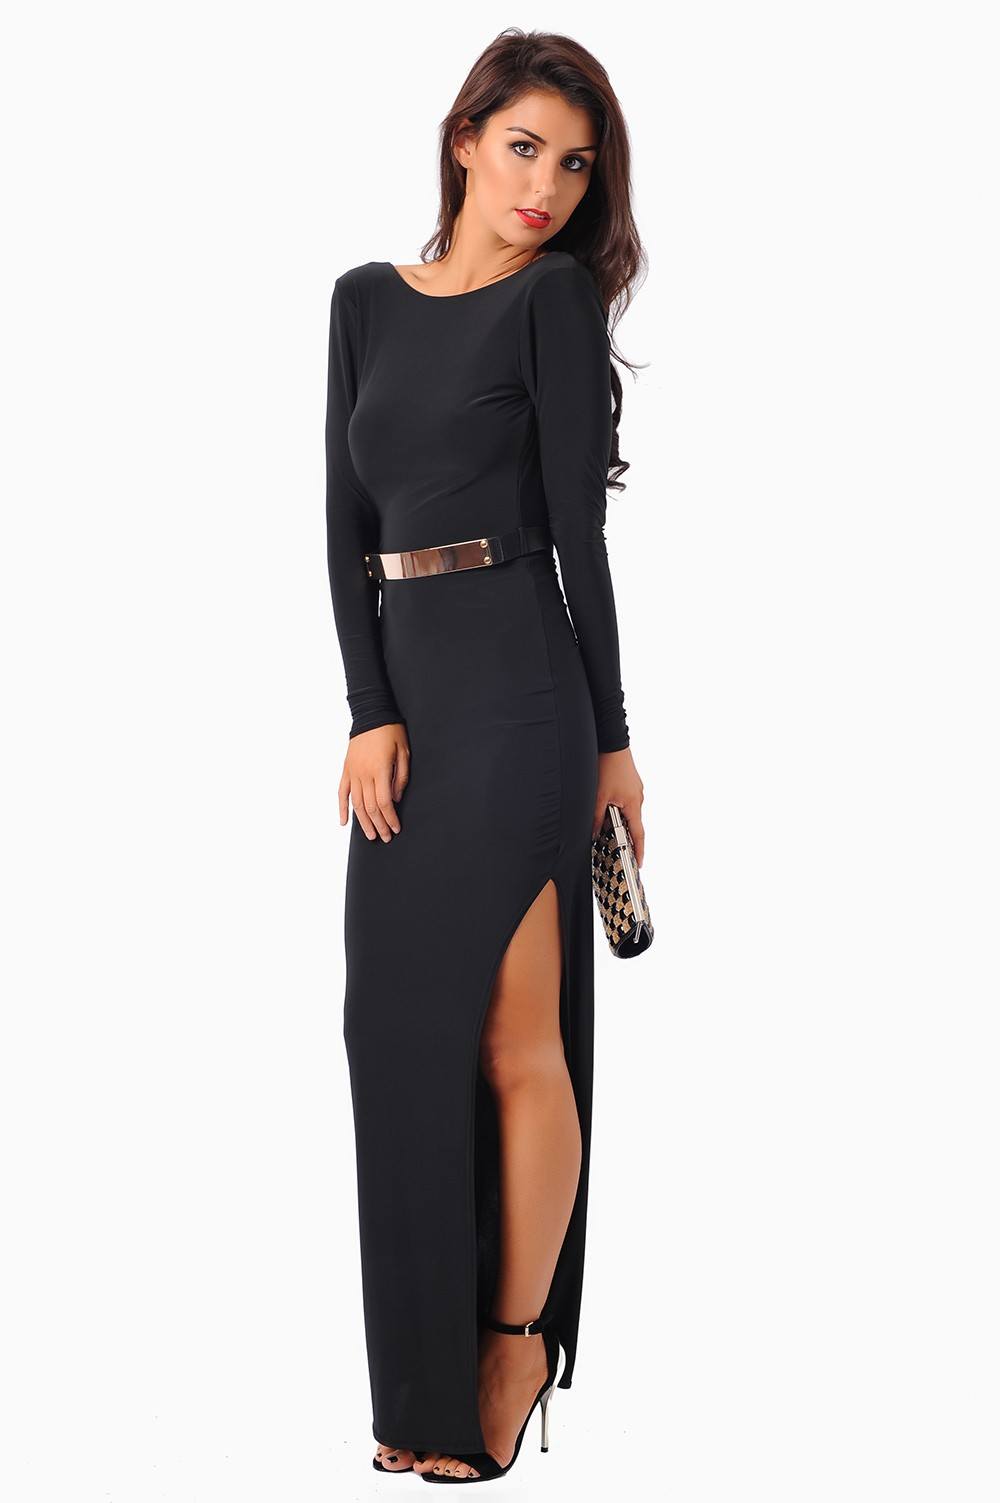 Find black thigh split dress at ShopStyle. Shop the latest collection of black thigh split dress from the most popular stores - all in one place.